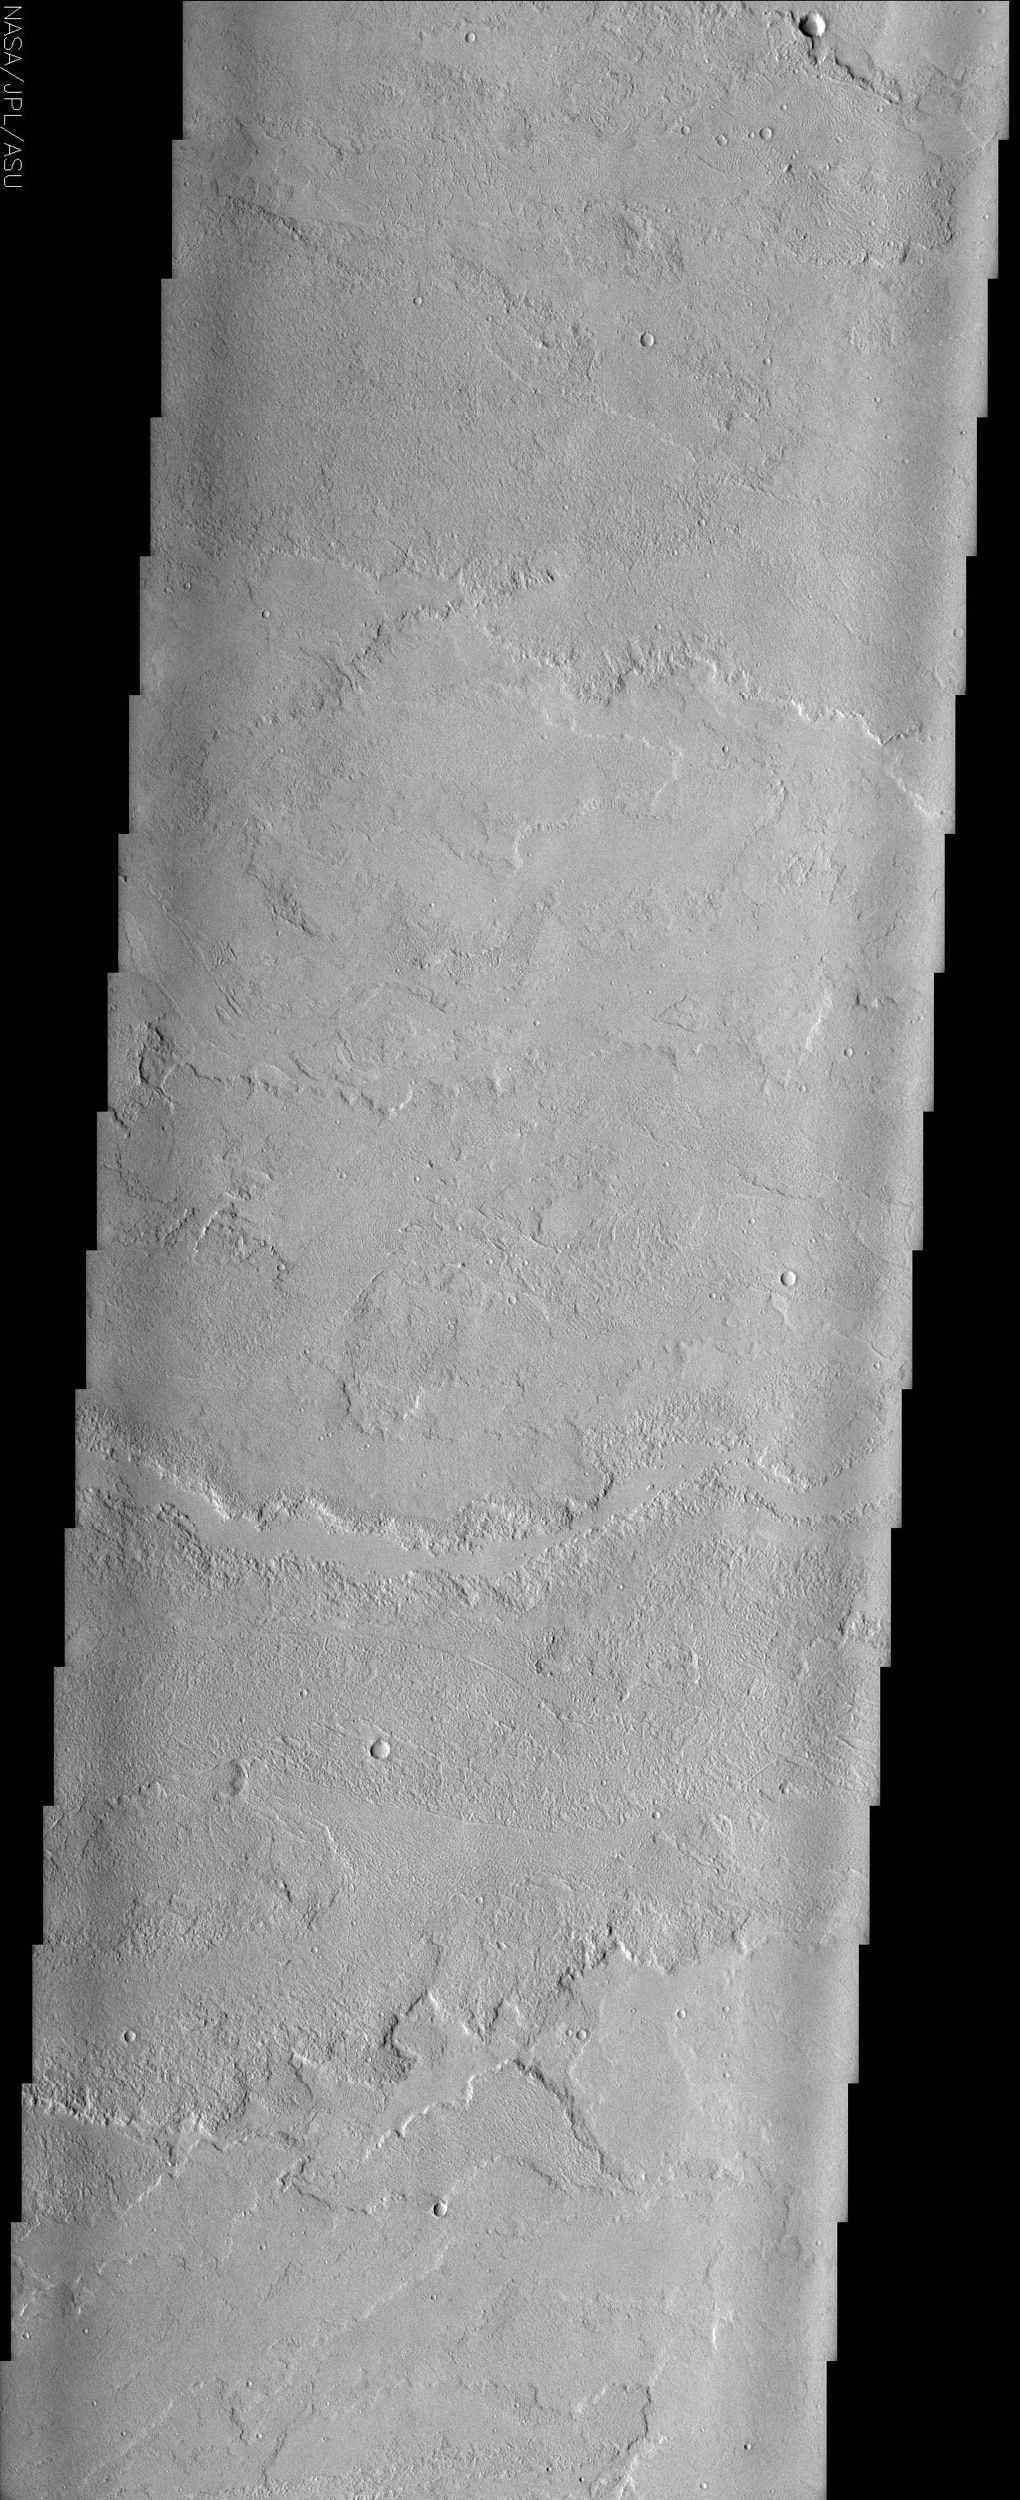 This image to the east of Tharsis Tholus from NASA's Mars Odyssey spacecraft shows one of many vast fields of lava flows produced by the great Tharsis volcanoes.